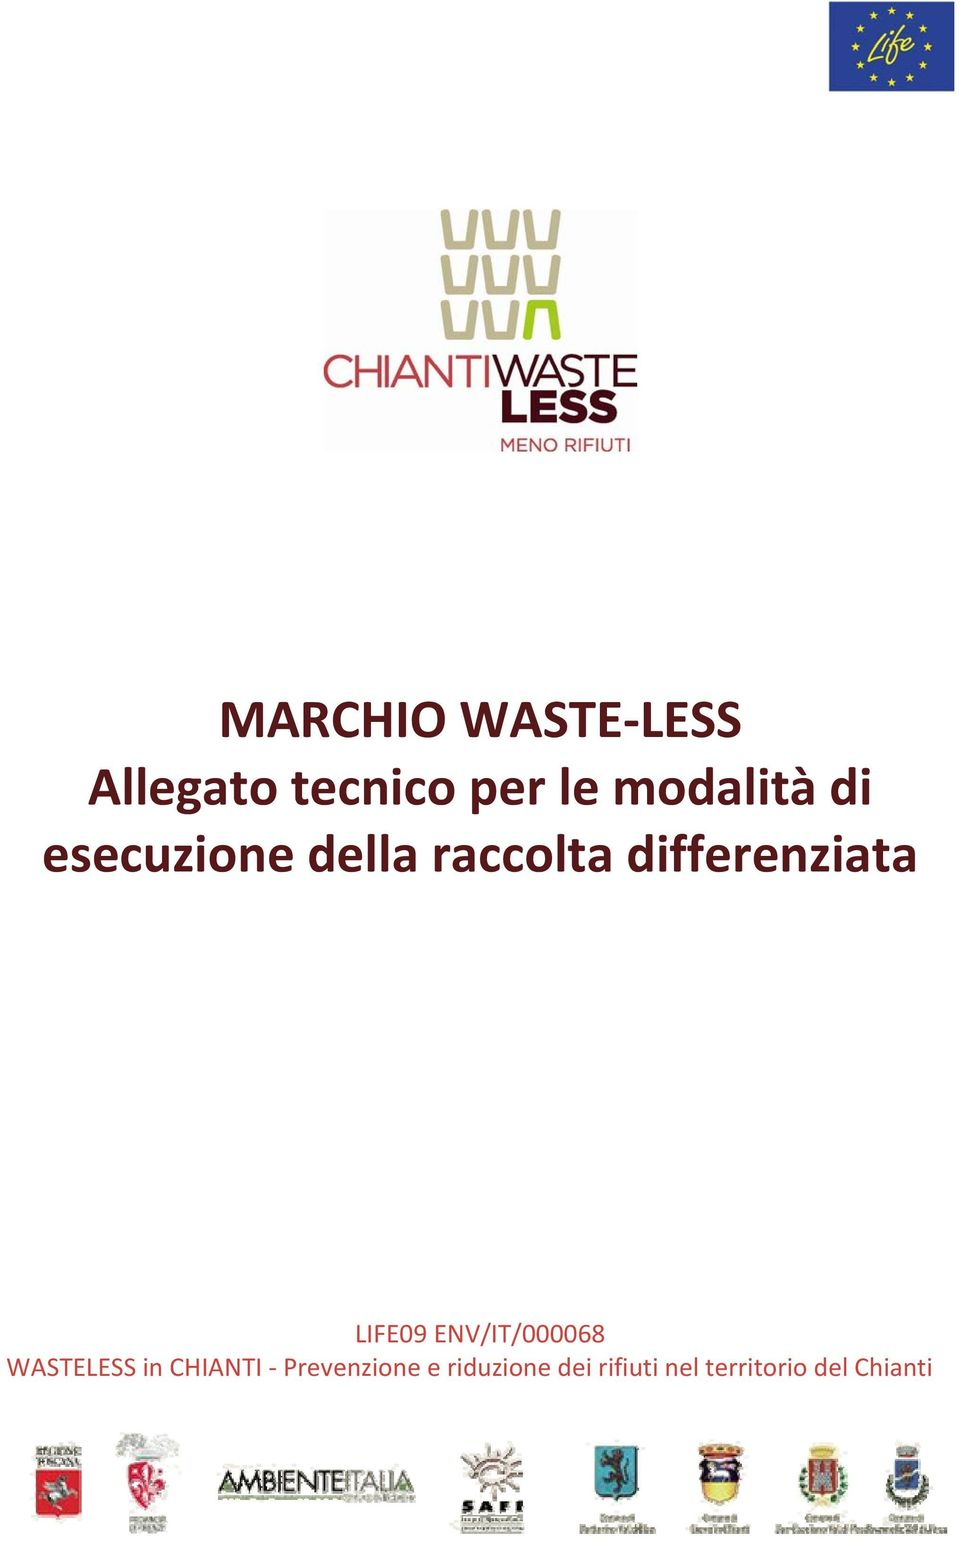 differenziata LIFE09 ENV/IT/000068 WASTELESS in